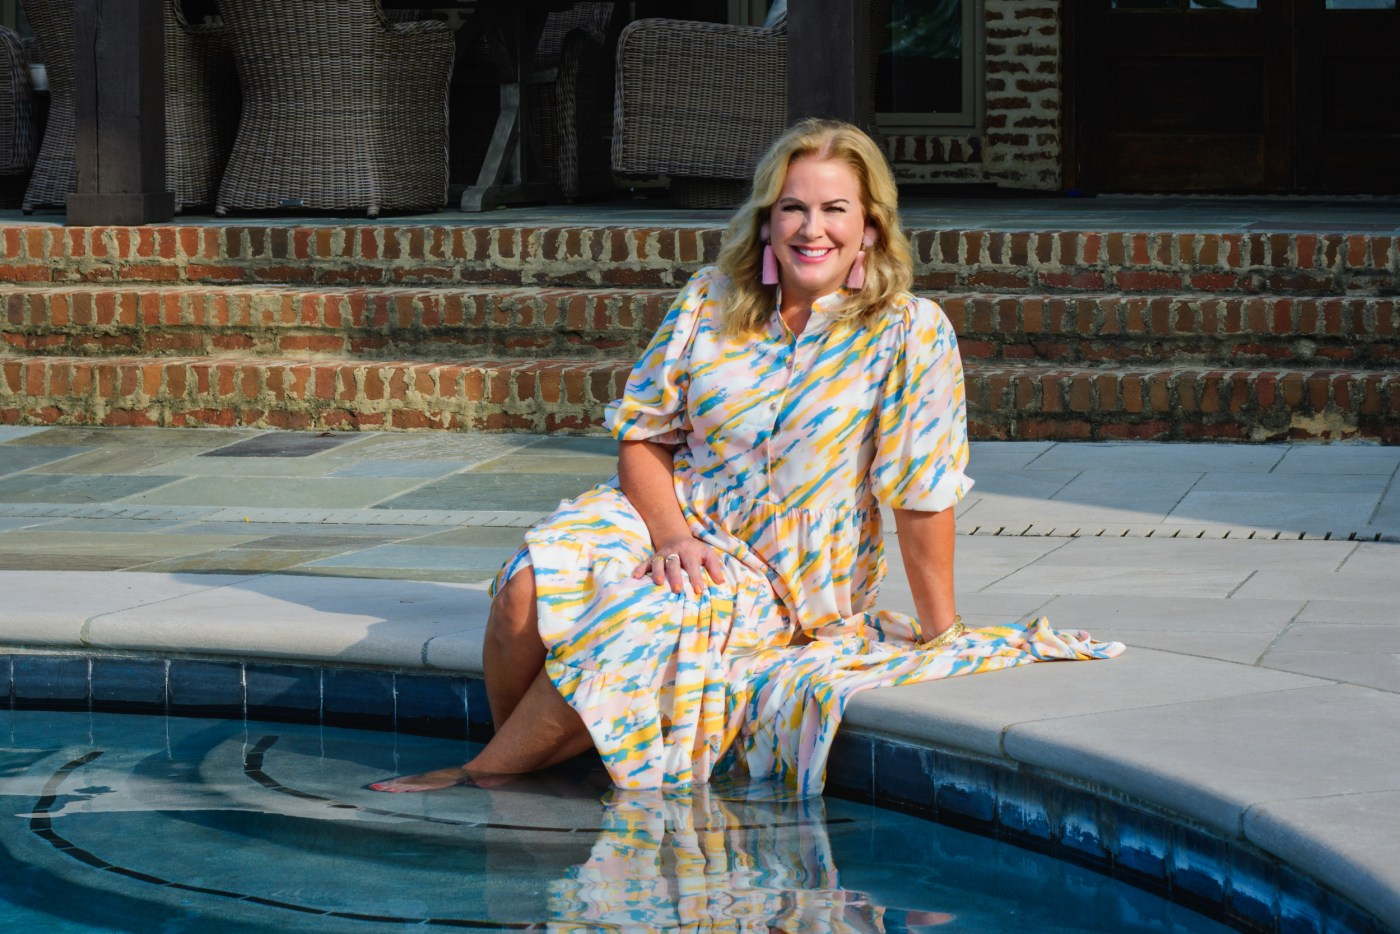 woman at pool, outdoor living